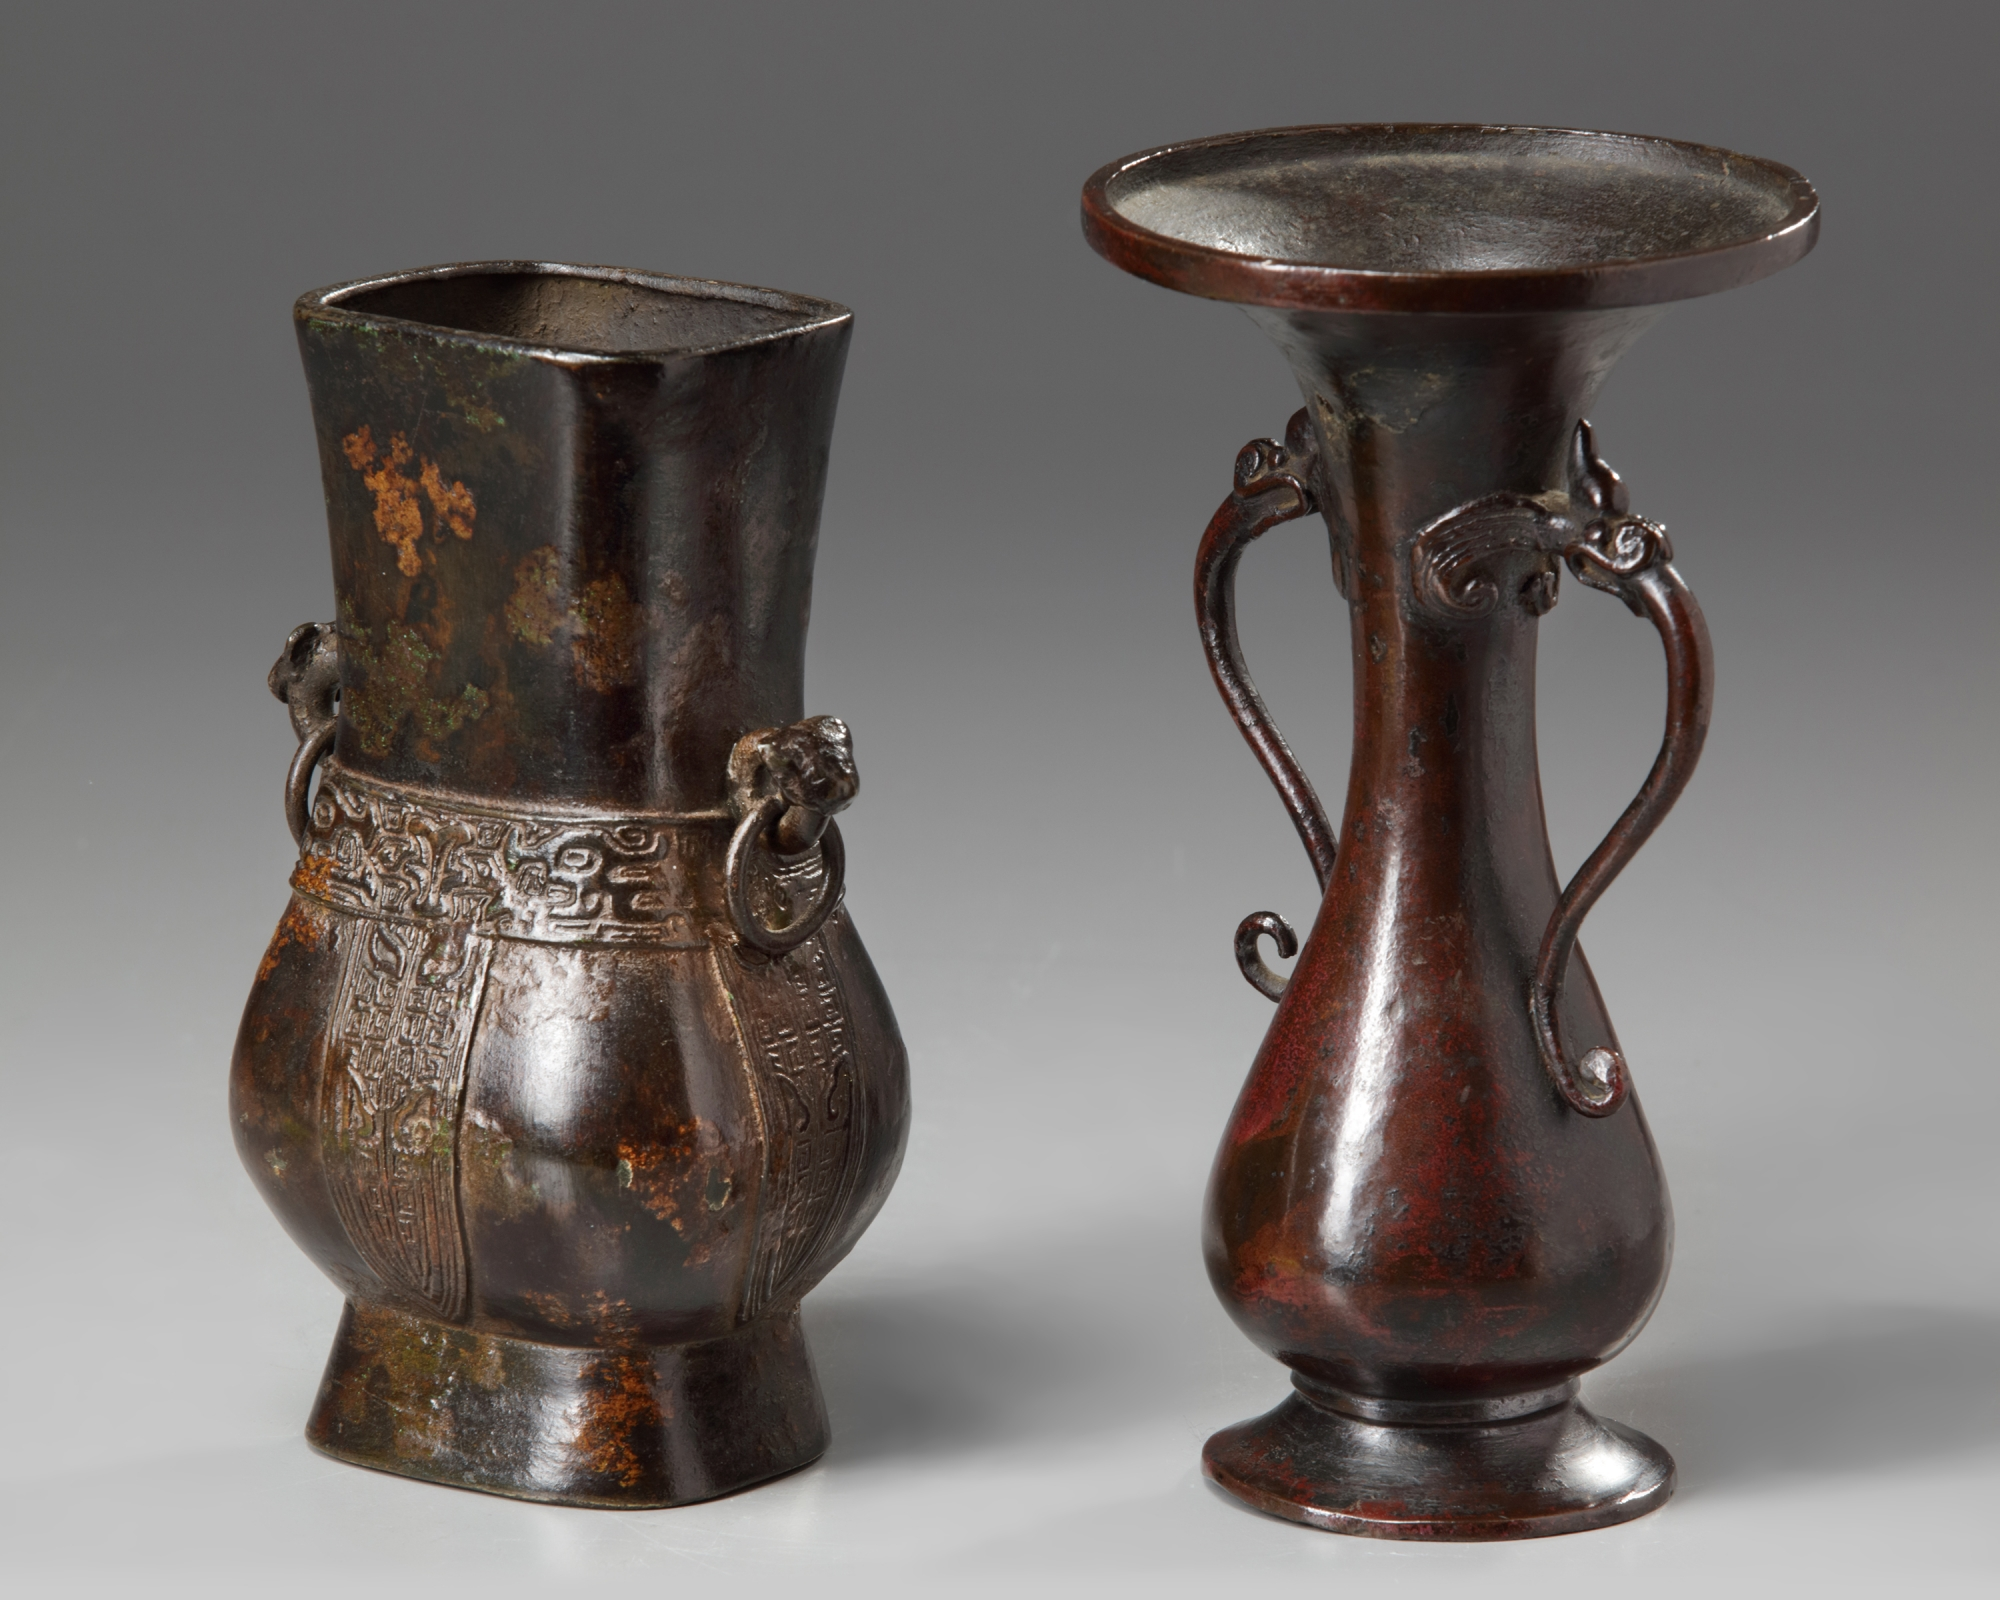 Lot 38 - Two Chinese bronze vases